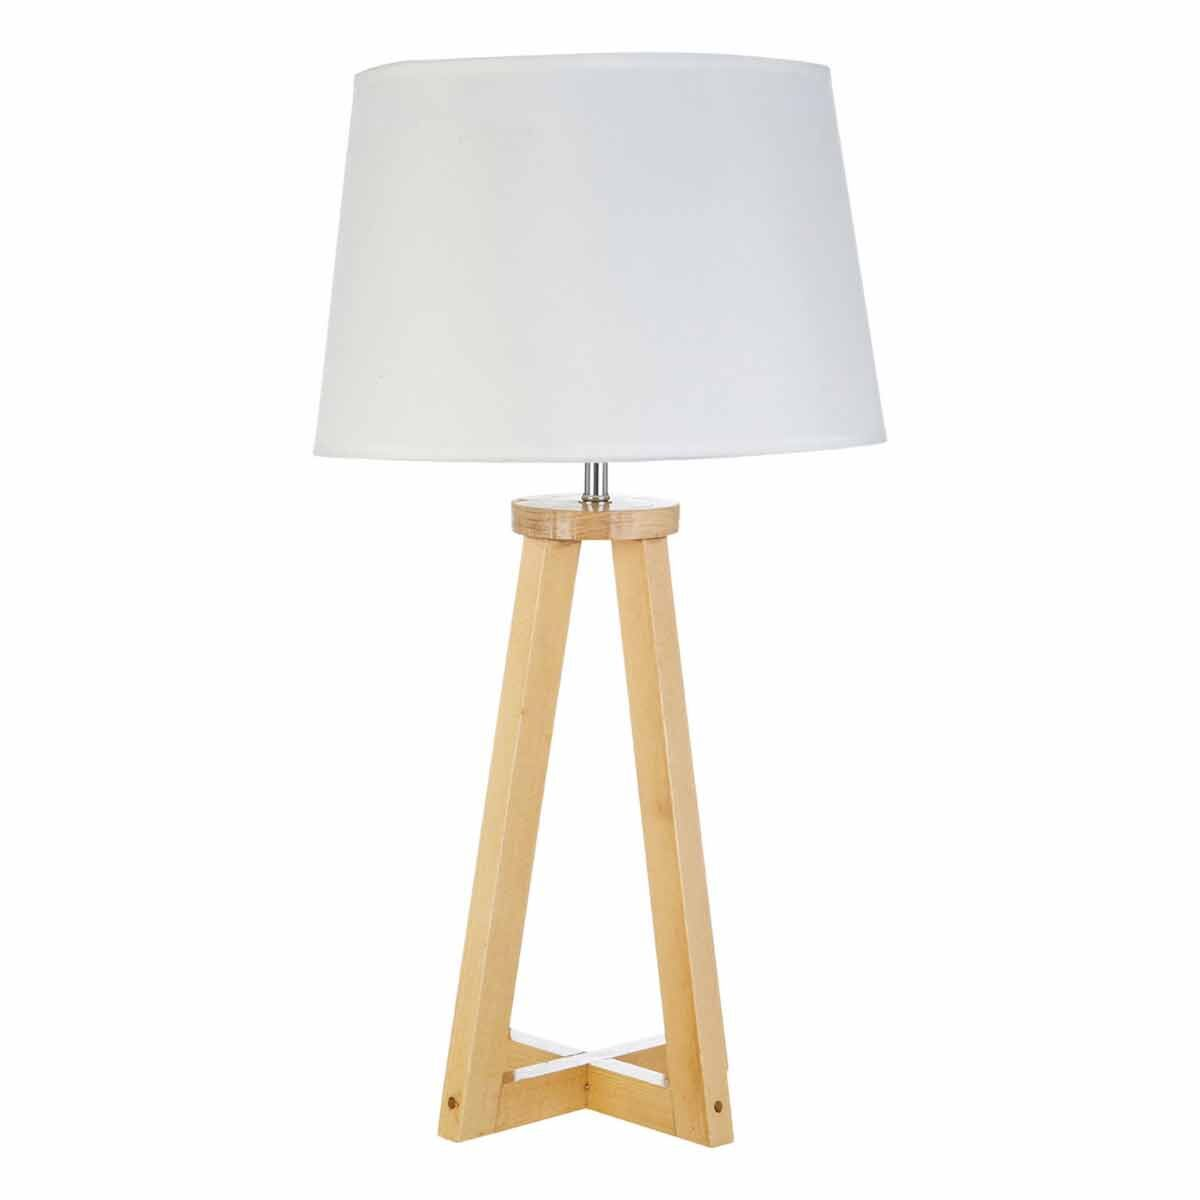 Premier Housewares Brett Table Lamp with Shade